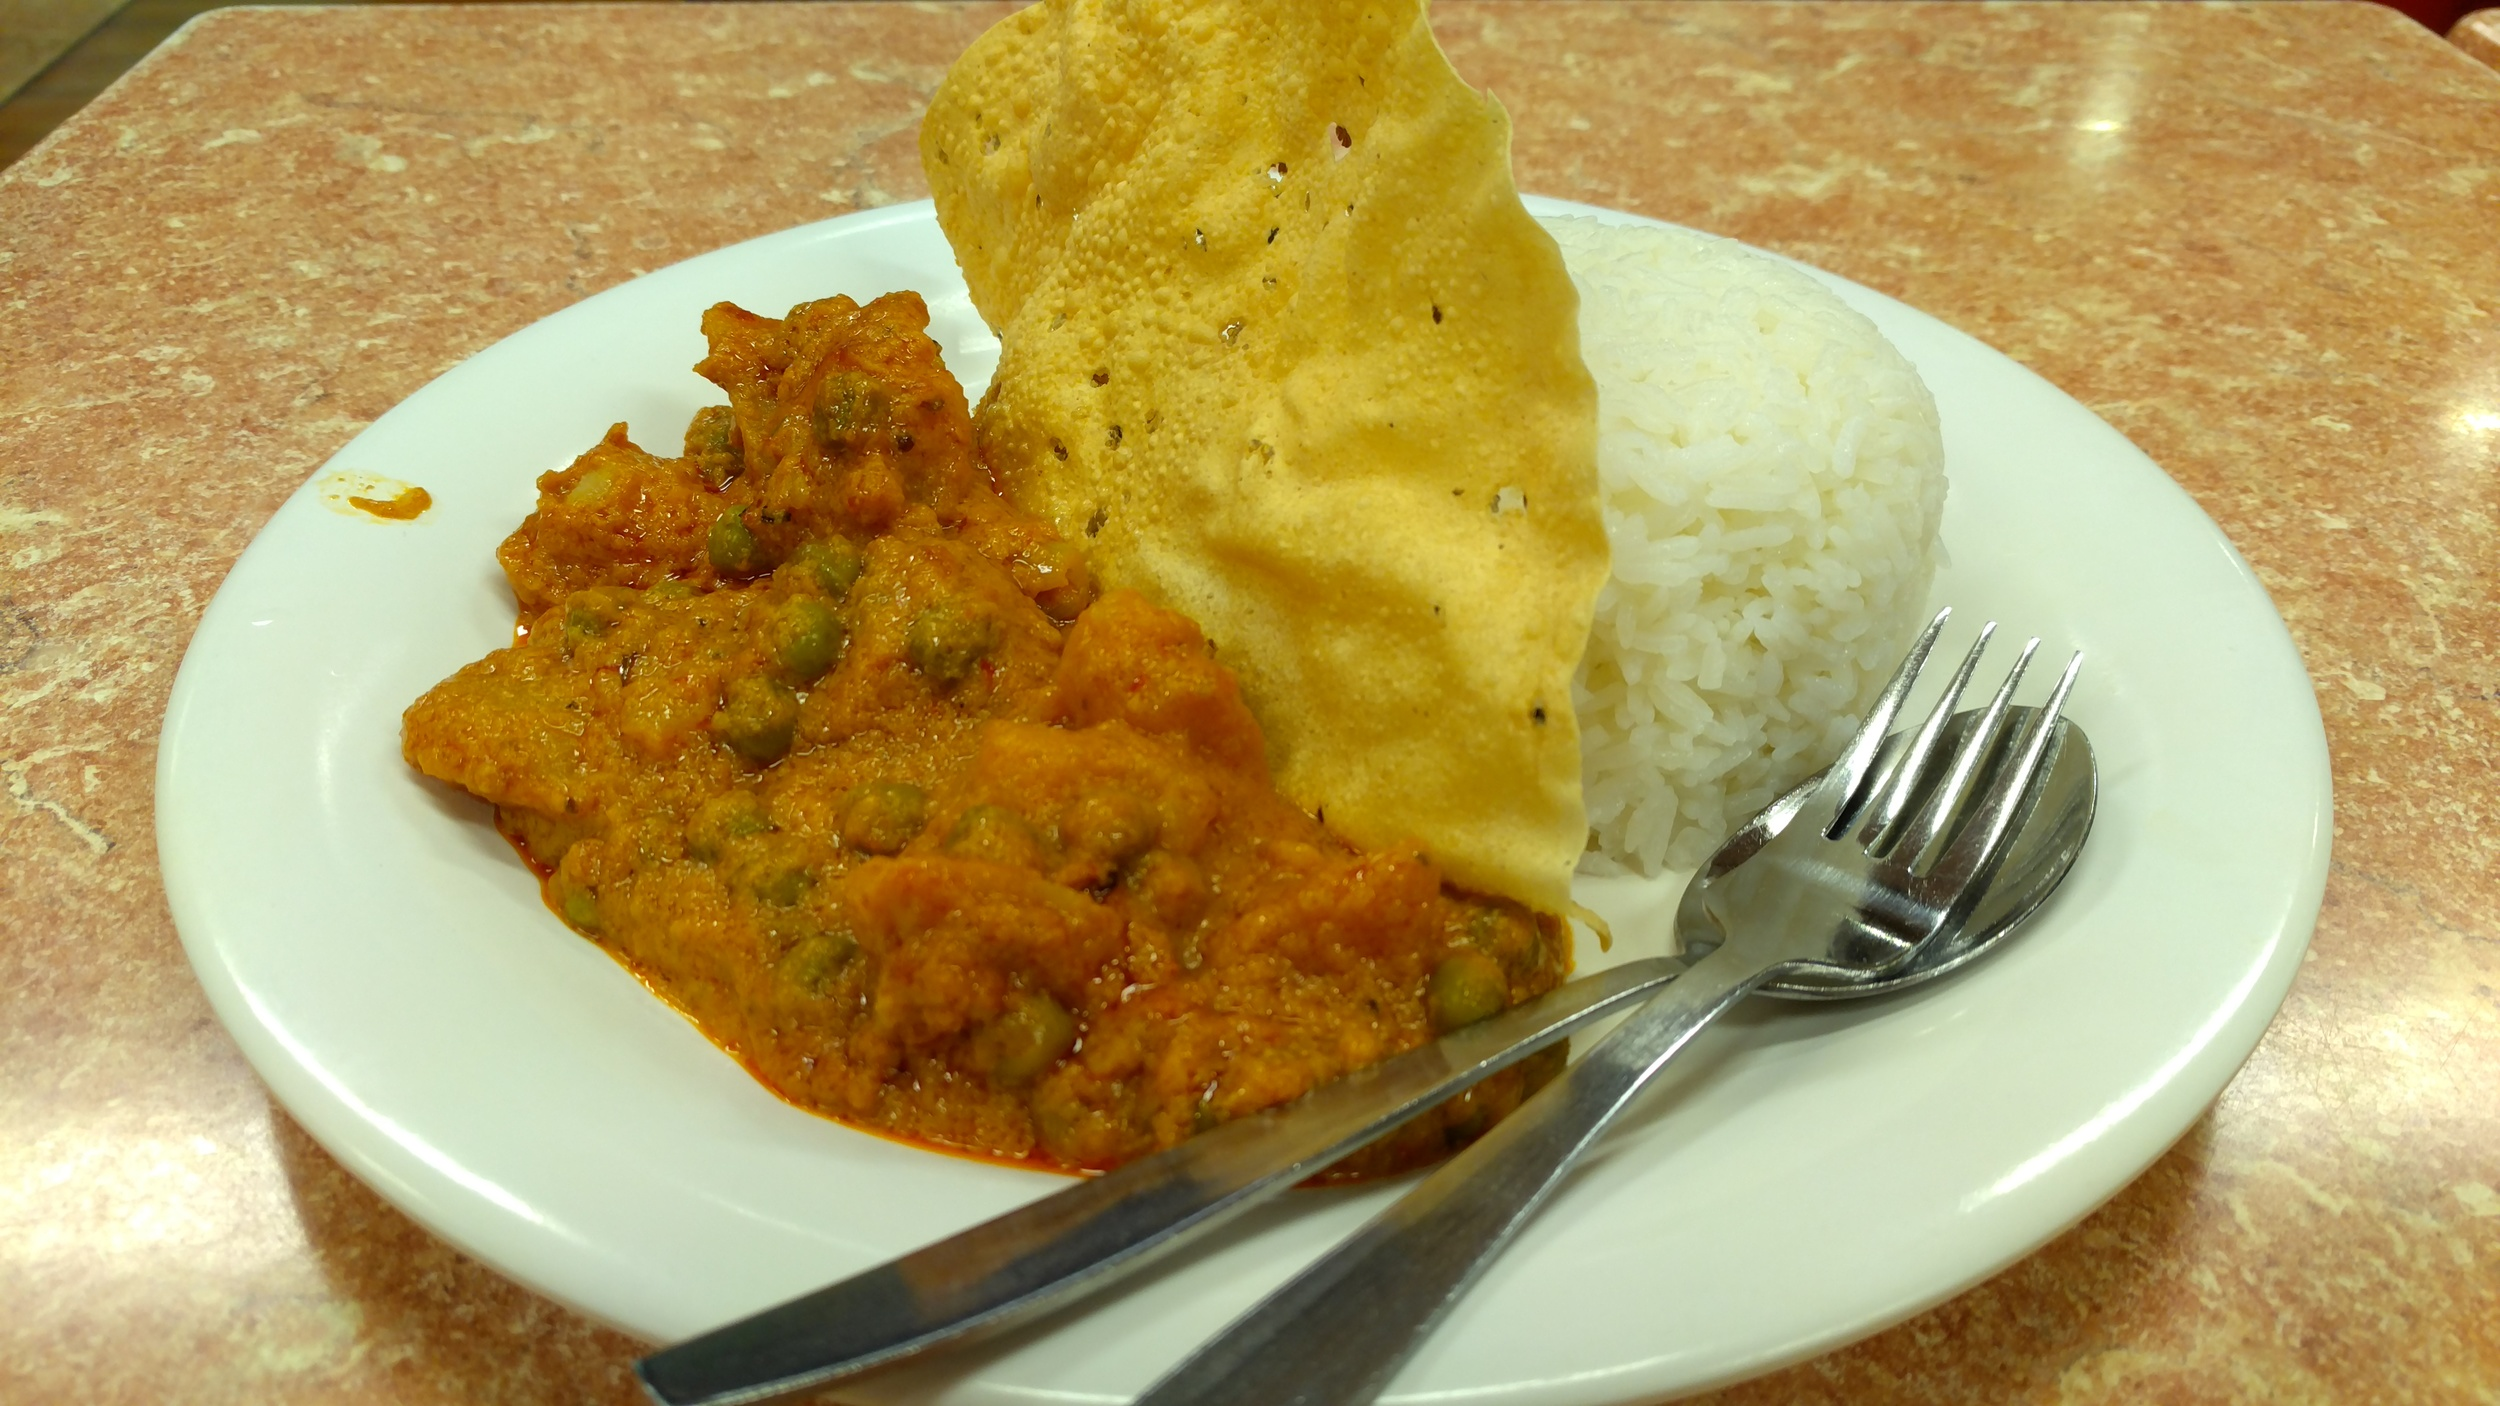 The Indian Curry at the SANDWICH CLUB